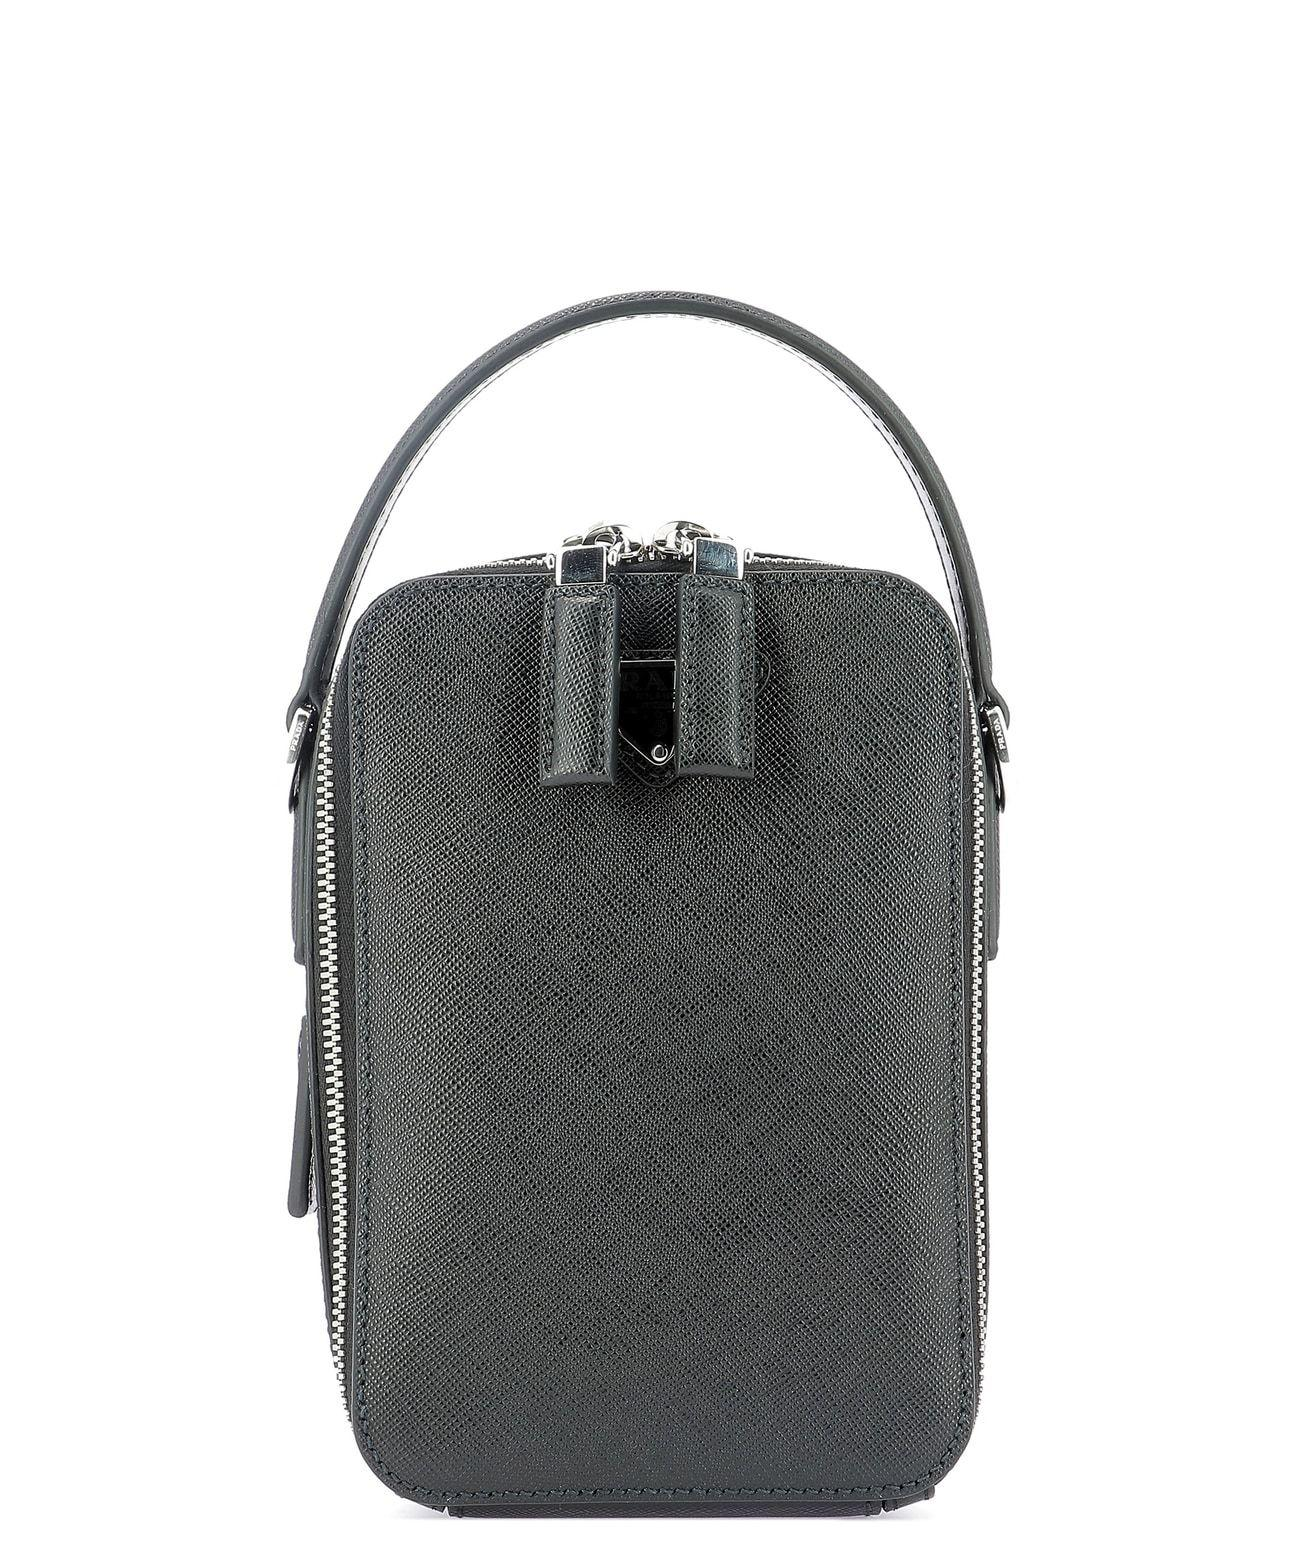 110d80d6095d Lyst - Prada Bandoliera Crossbody Bag in Black for Men